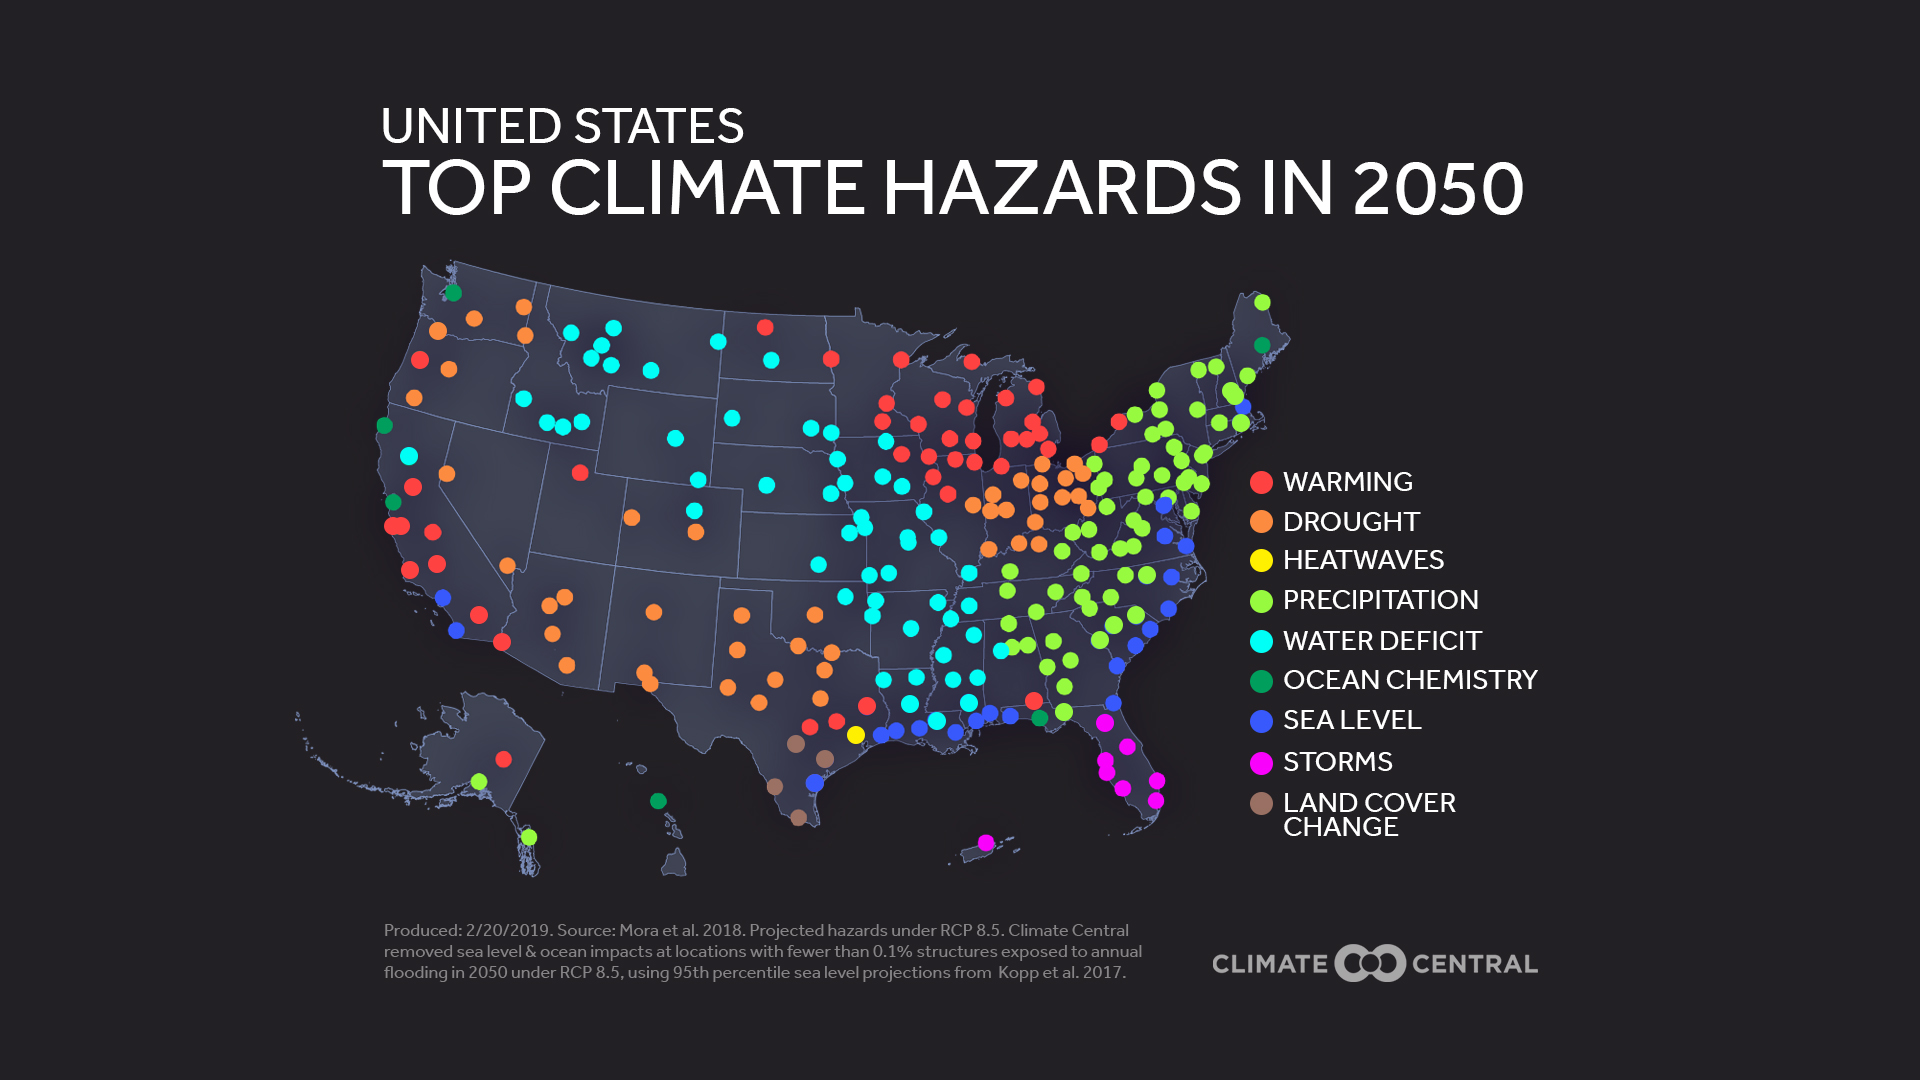 Top Climate Hazards in 2050